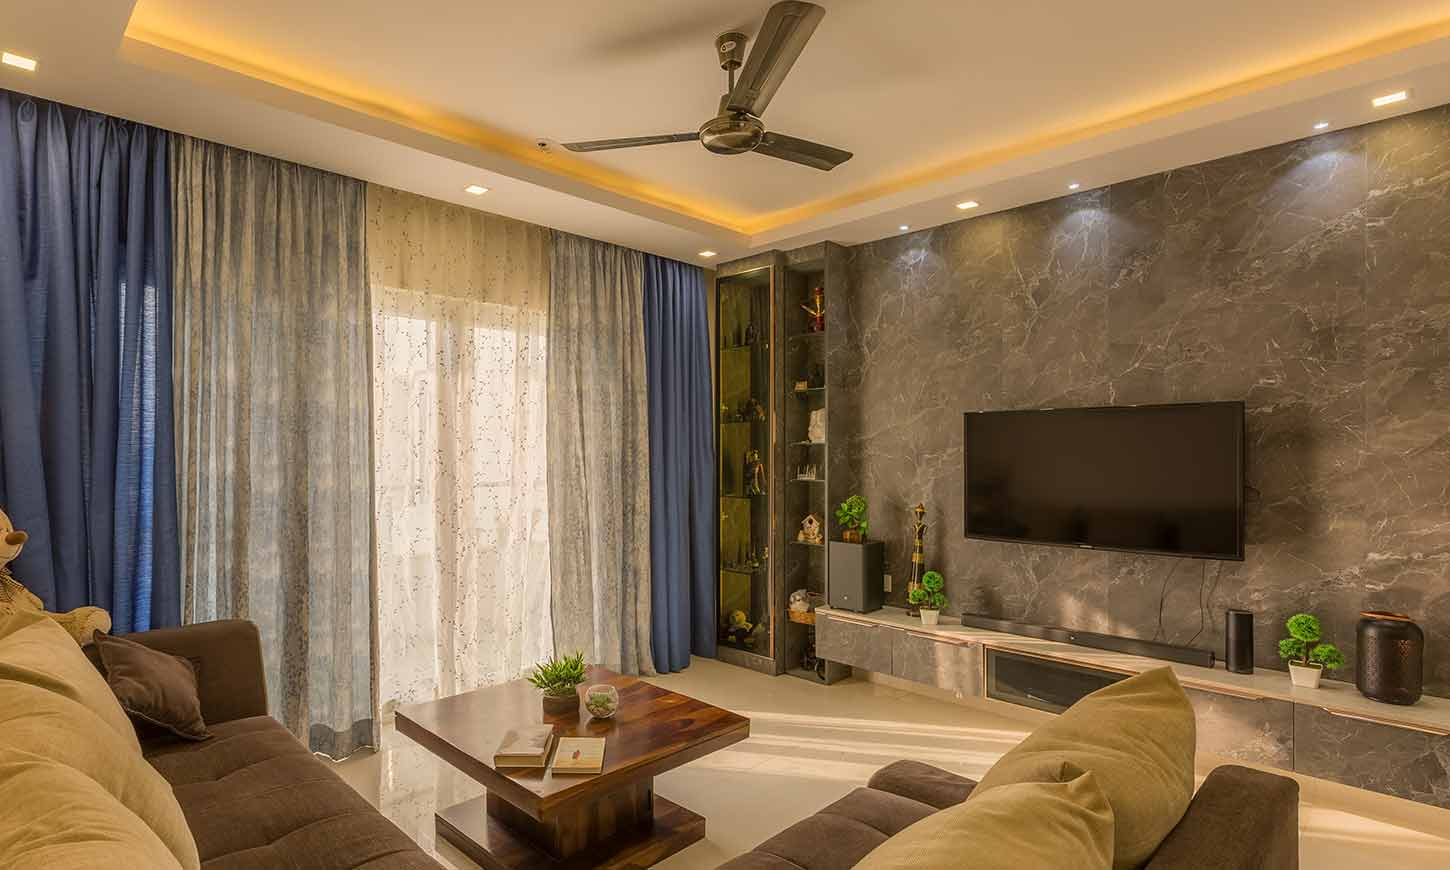 Living room interior design bangalore with a tv unit designed by home interior designers in bangalore